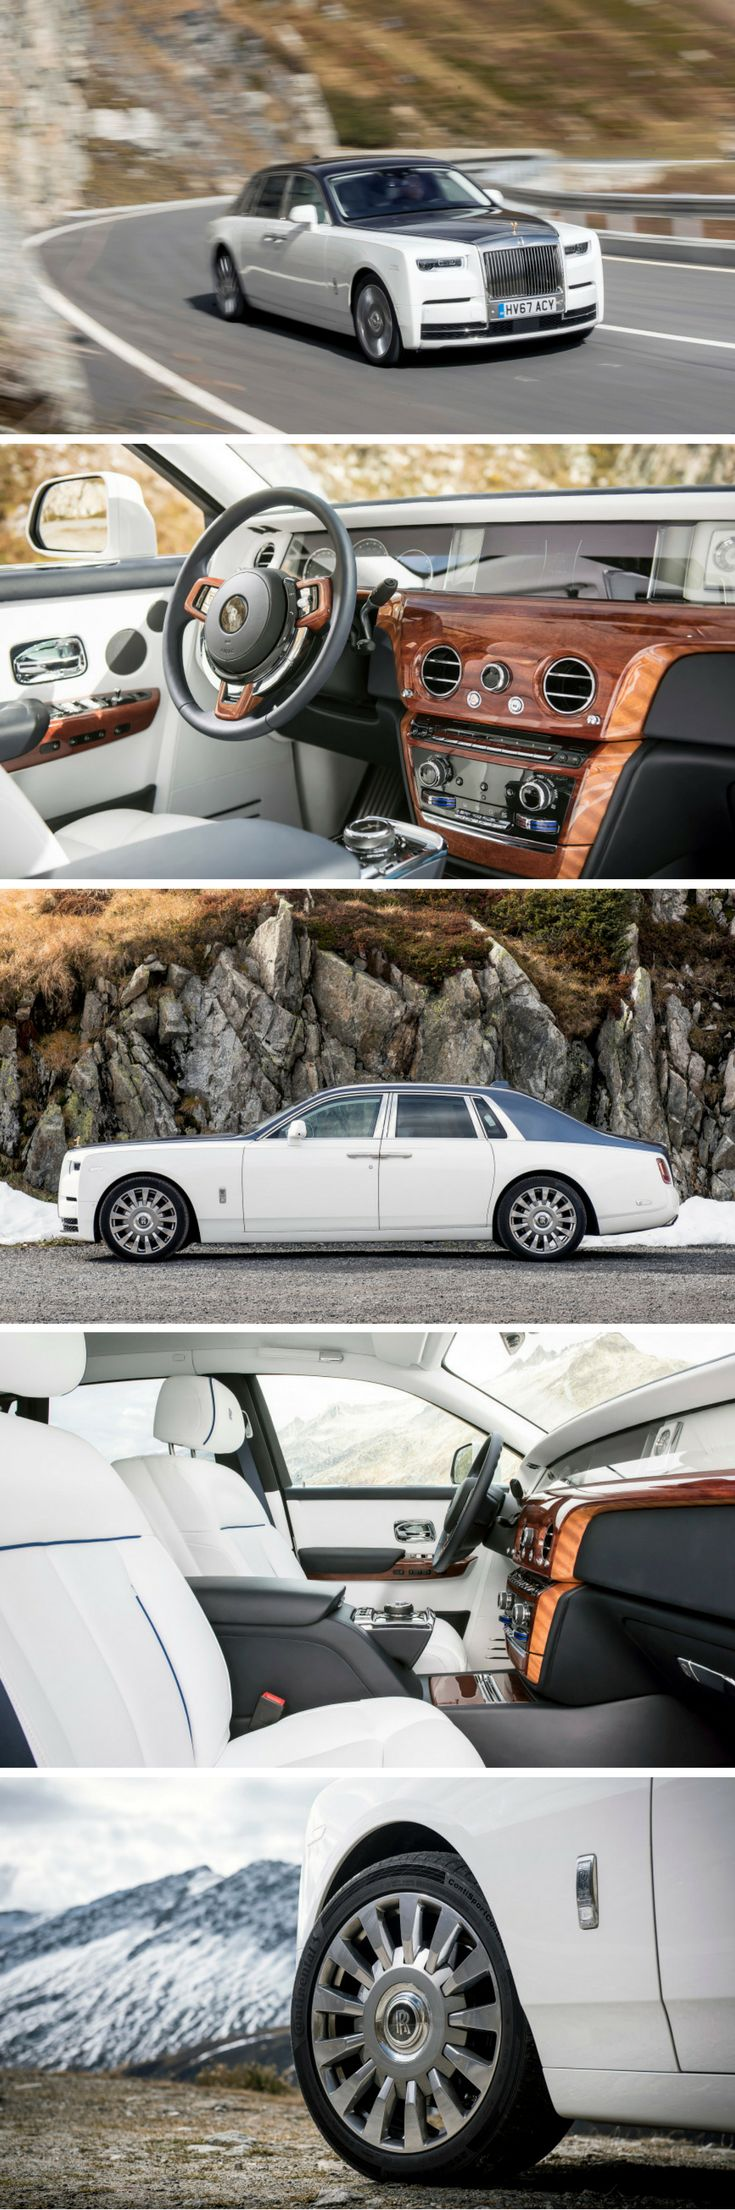 2018 Rolls-Royce Phantom First Drive | When only the best will do